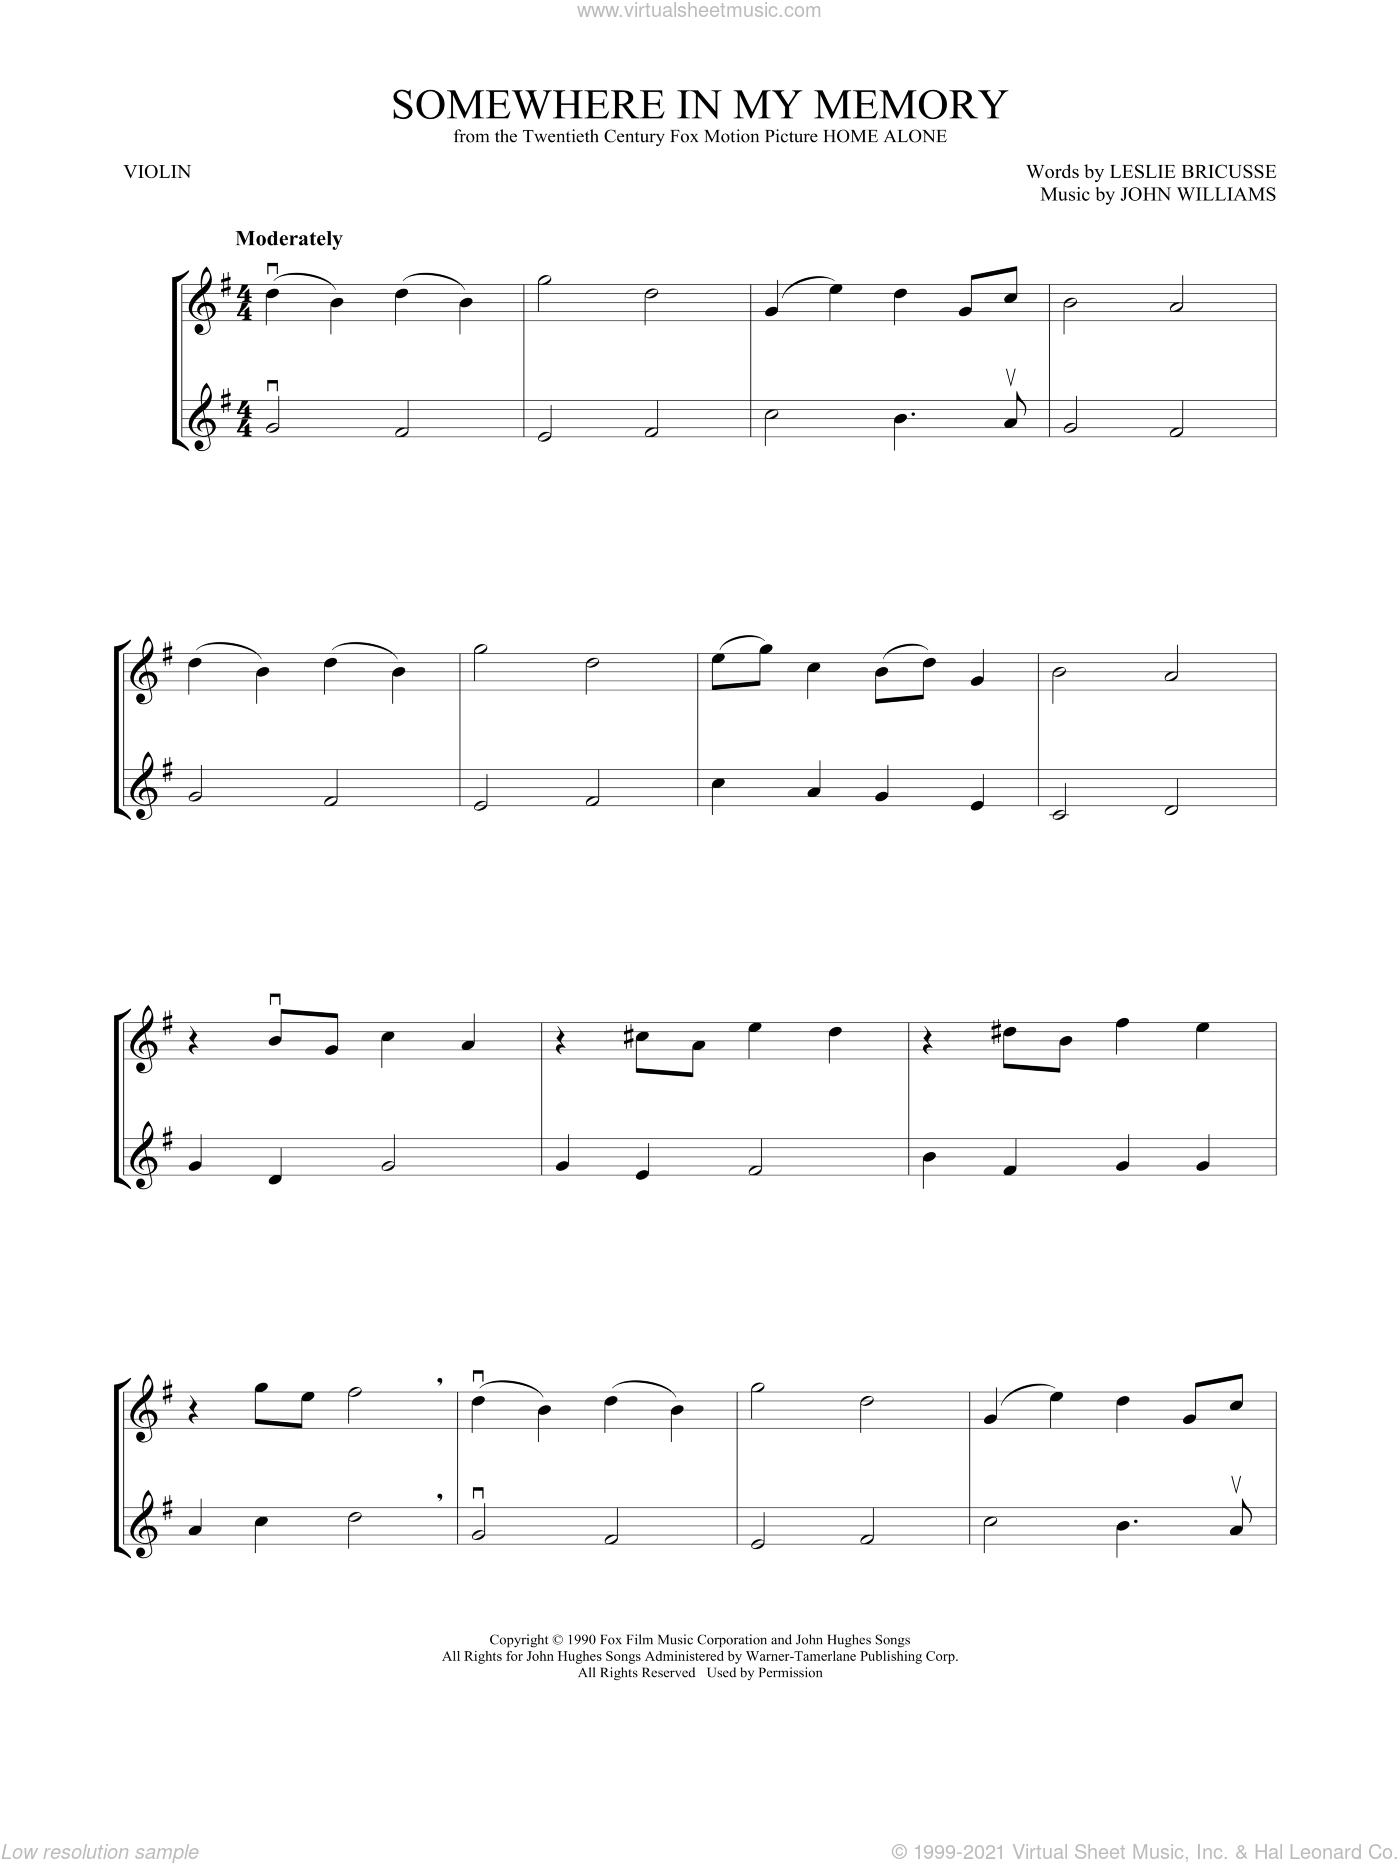 Somewhere In My Memory sheet music for two violins (duets, violin duets) by John Williams, intermediate skill level